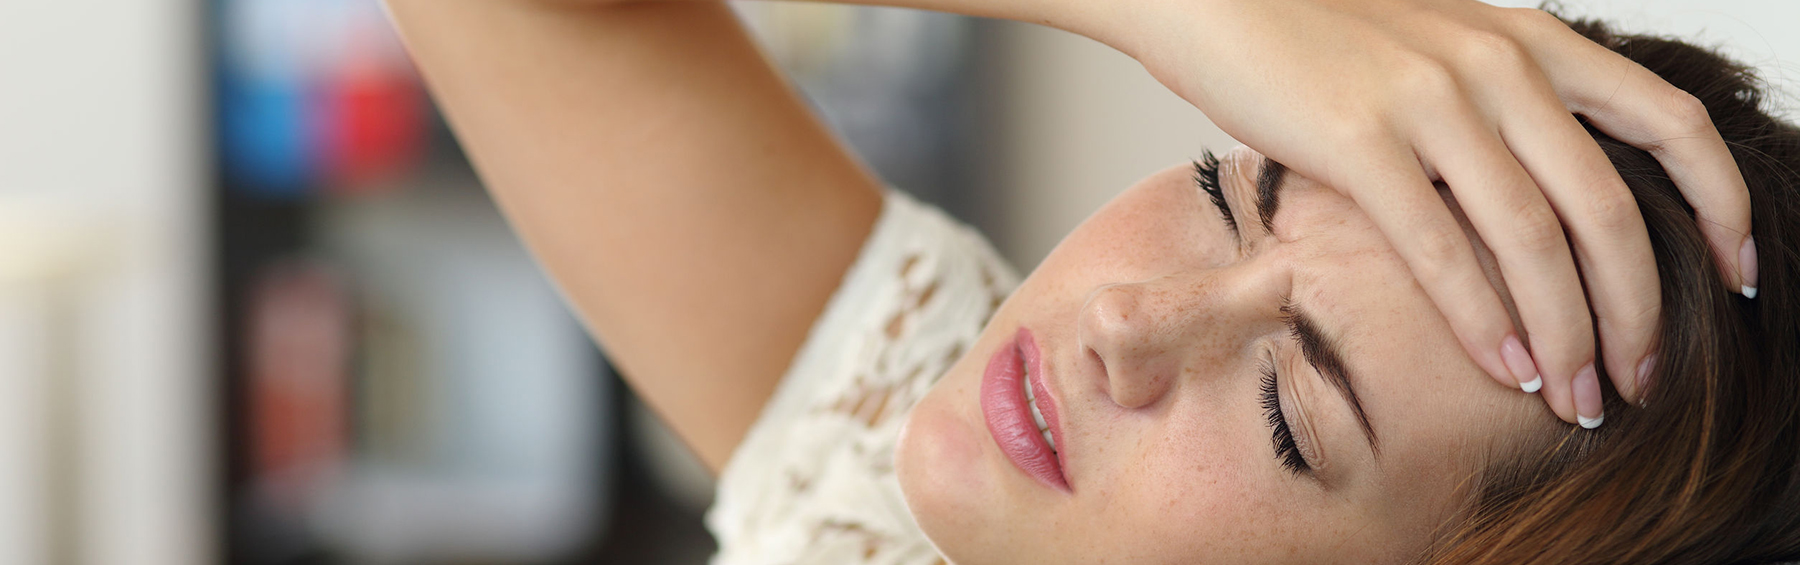 Waking up with a throbbing head? Here are a few reasons why